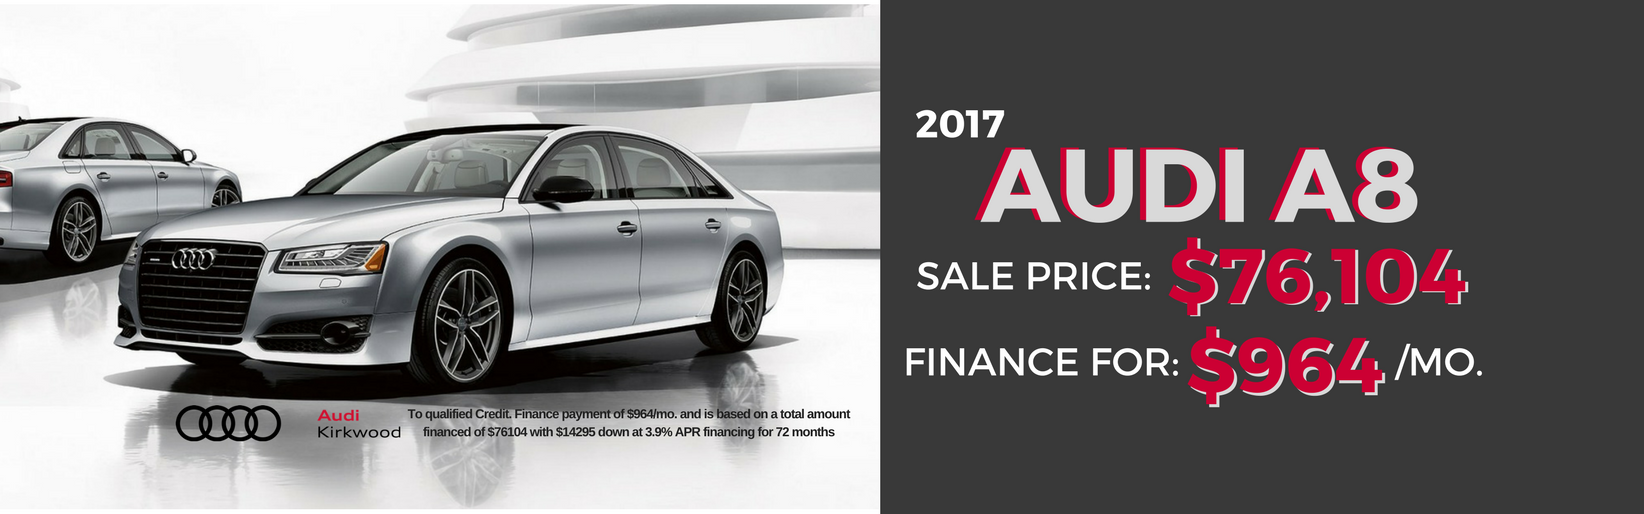 buffalo audi near tts htm sale coupe incentives hei payment offers ny wid lease exterior crop for new hero finance bowmansville fit